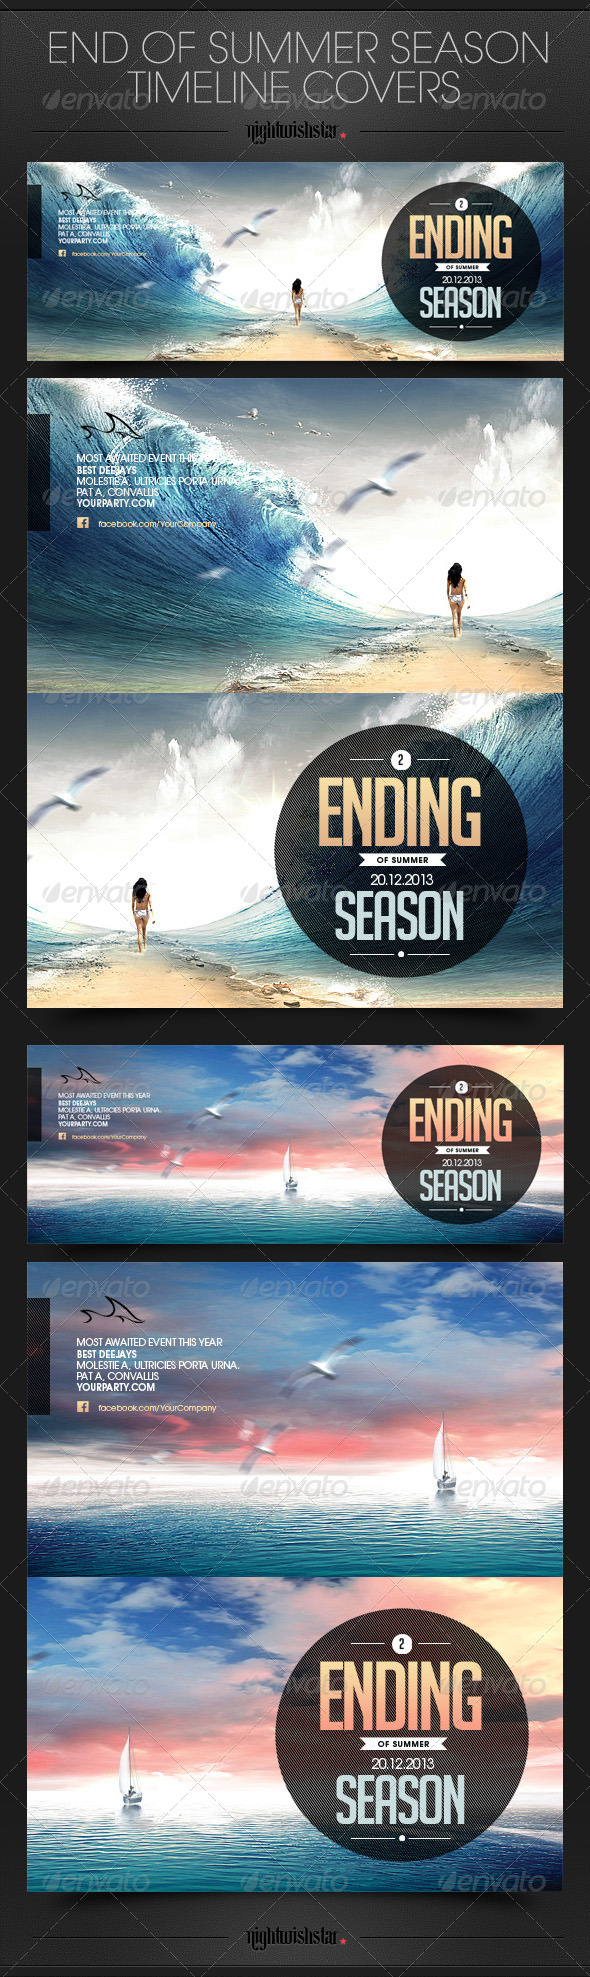 GraphicRiver End of Summer Season Timeline Cover 6424847